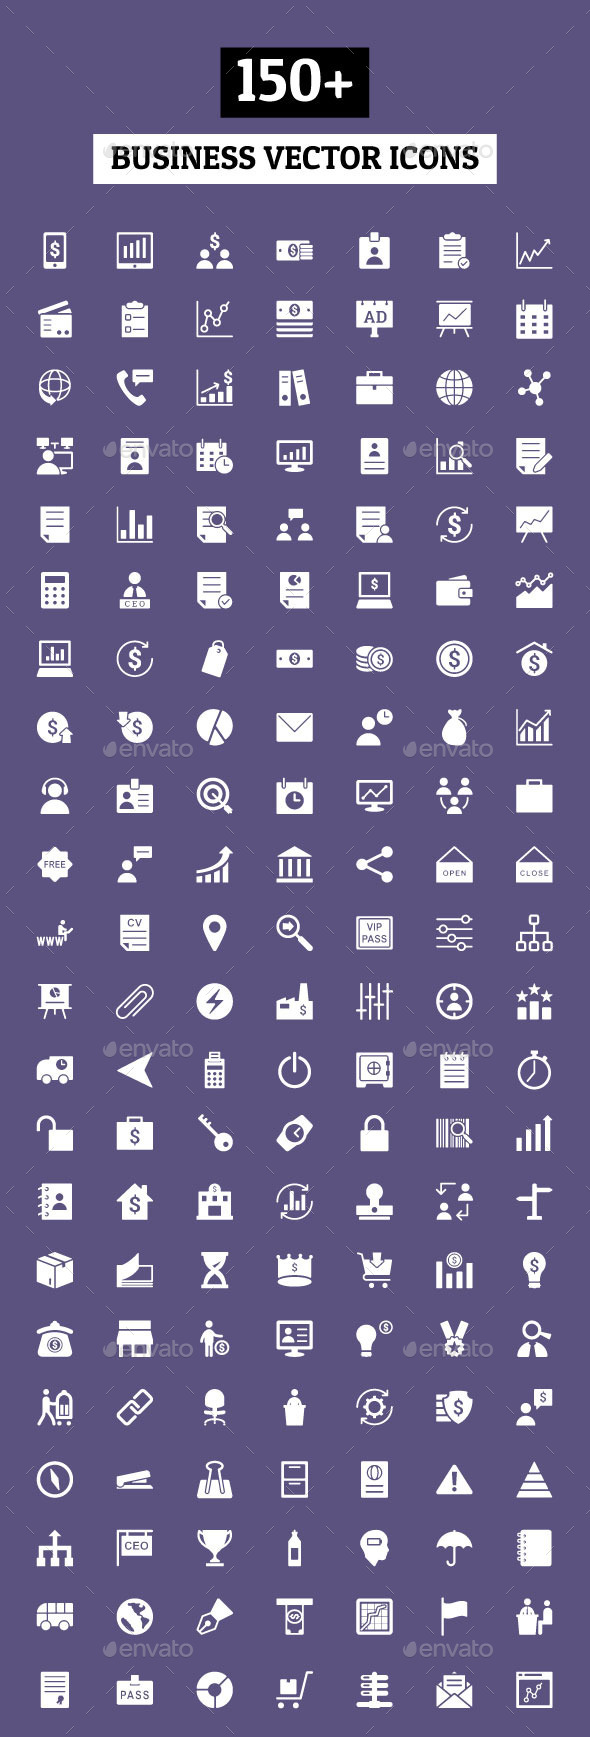 150+ Business Vector Icons - Business Icons